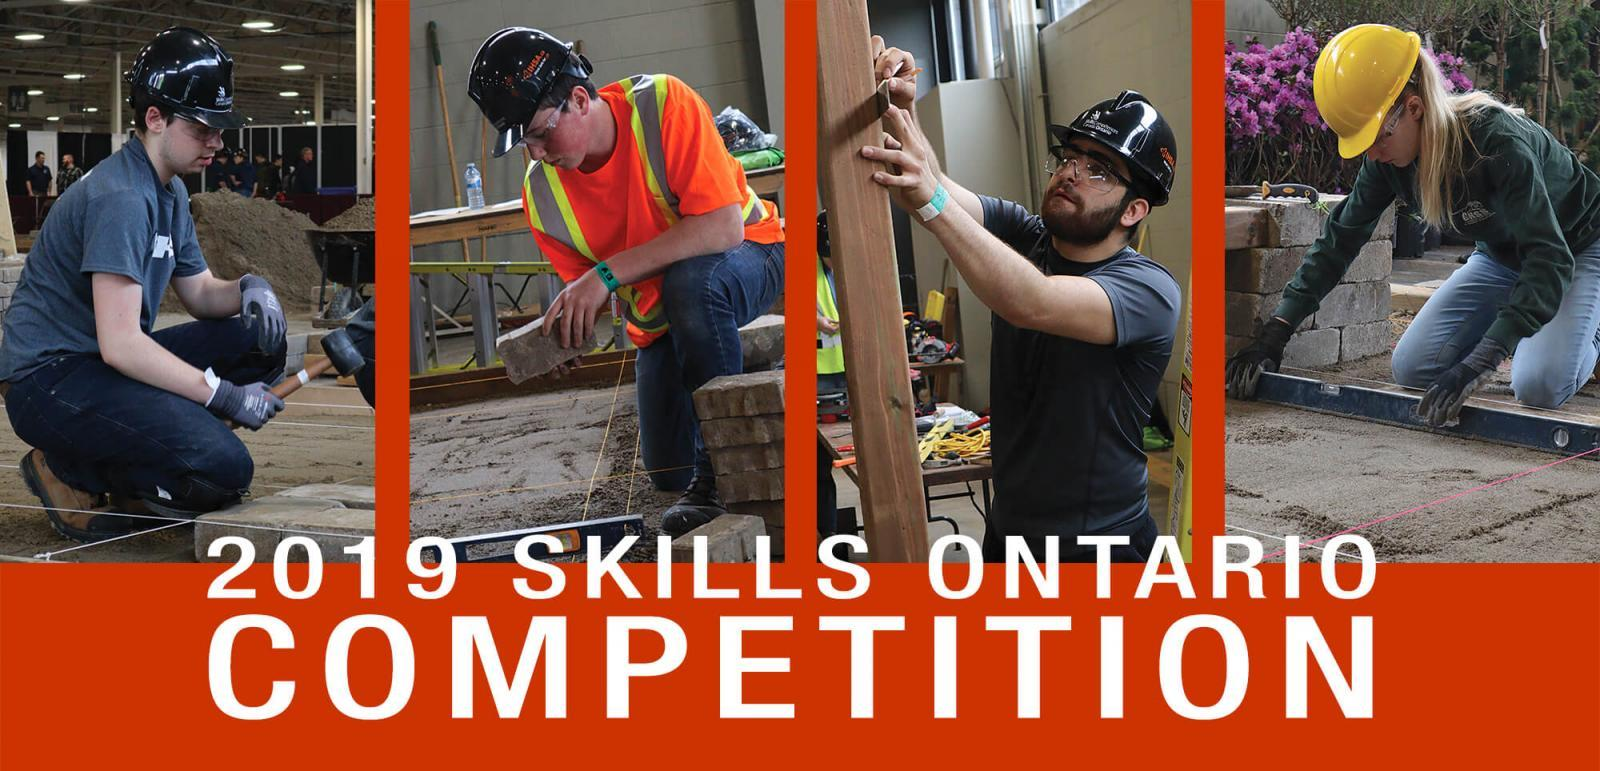 2019 Skills Ontario competition